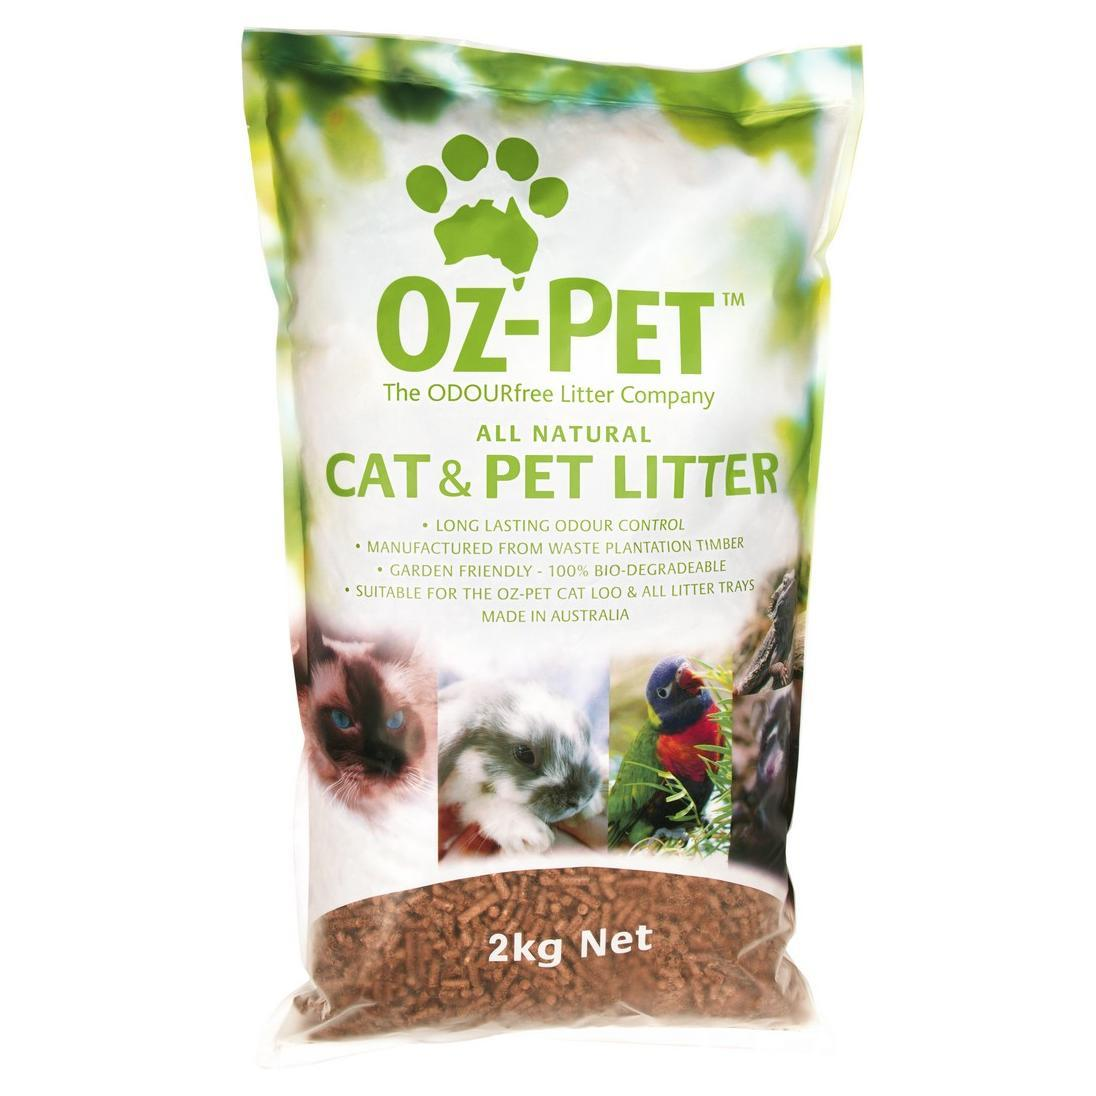 Oz-Pet Oz-Pet All Natural Pet & Cat Litter